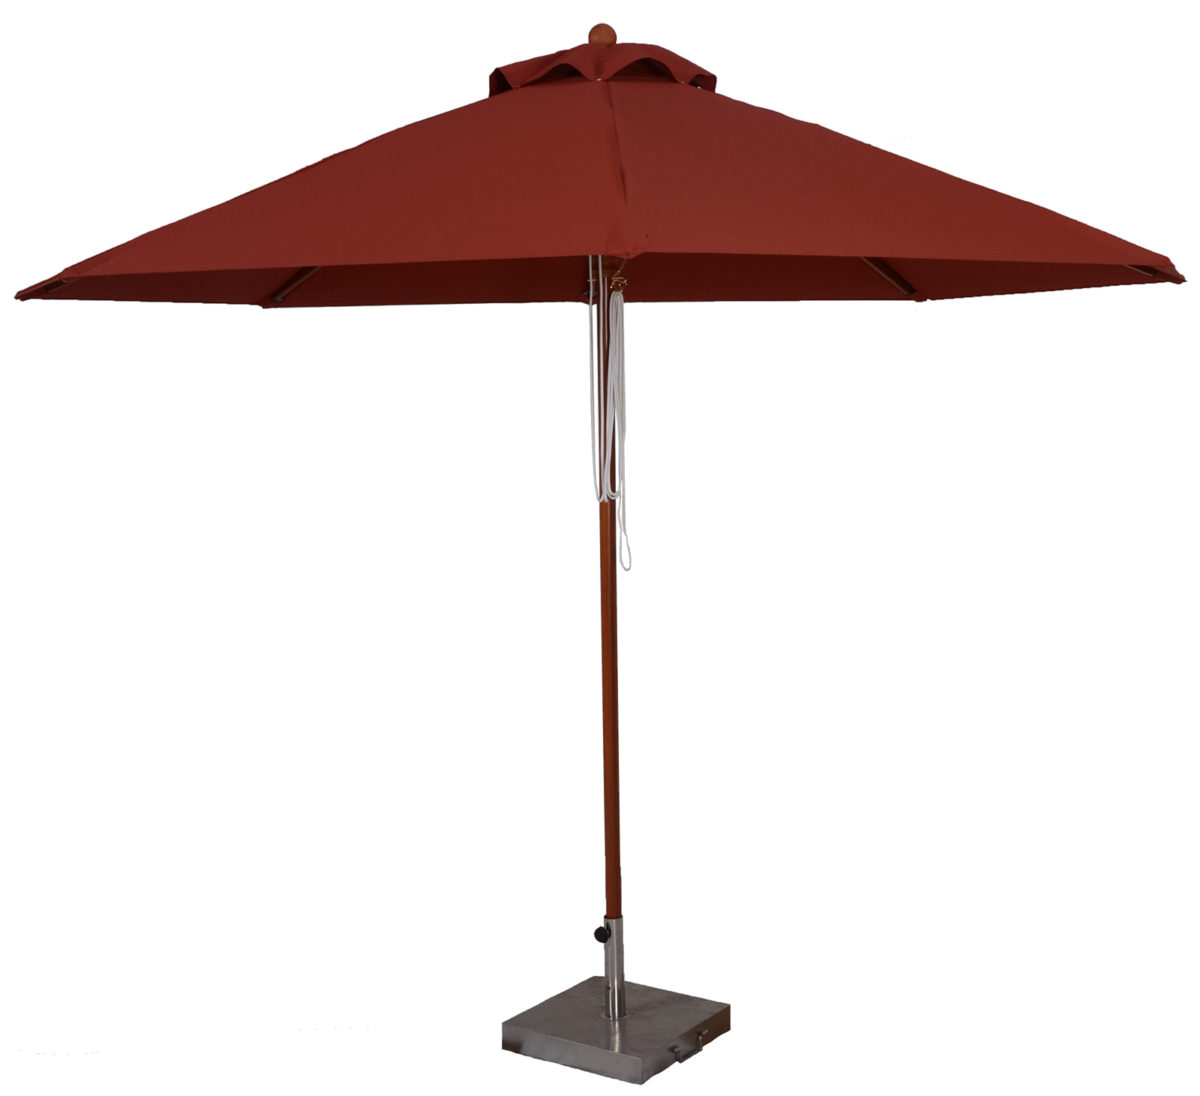 11 Ft. Wood Market Umbrella Pertaining To Well Known Solid Market Umbrellas (Gallery 6 of 20)